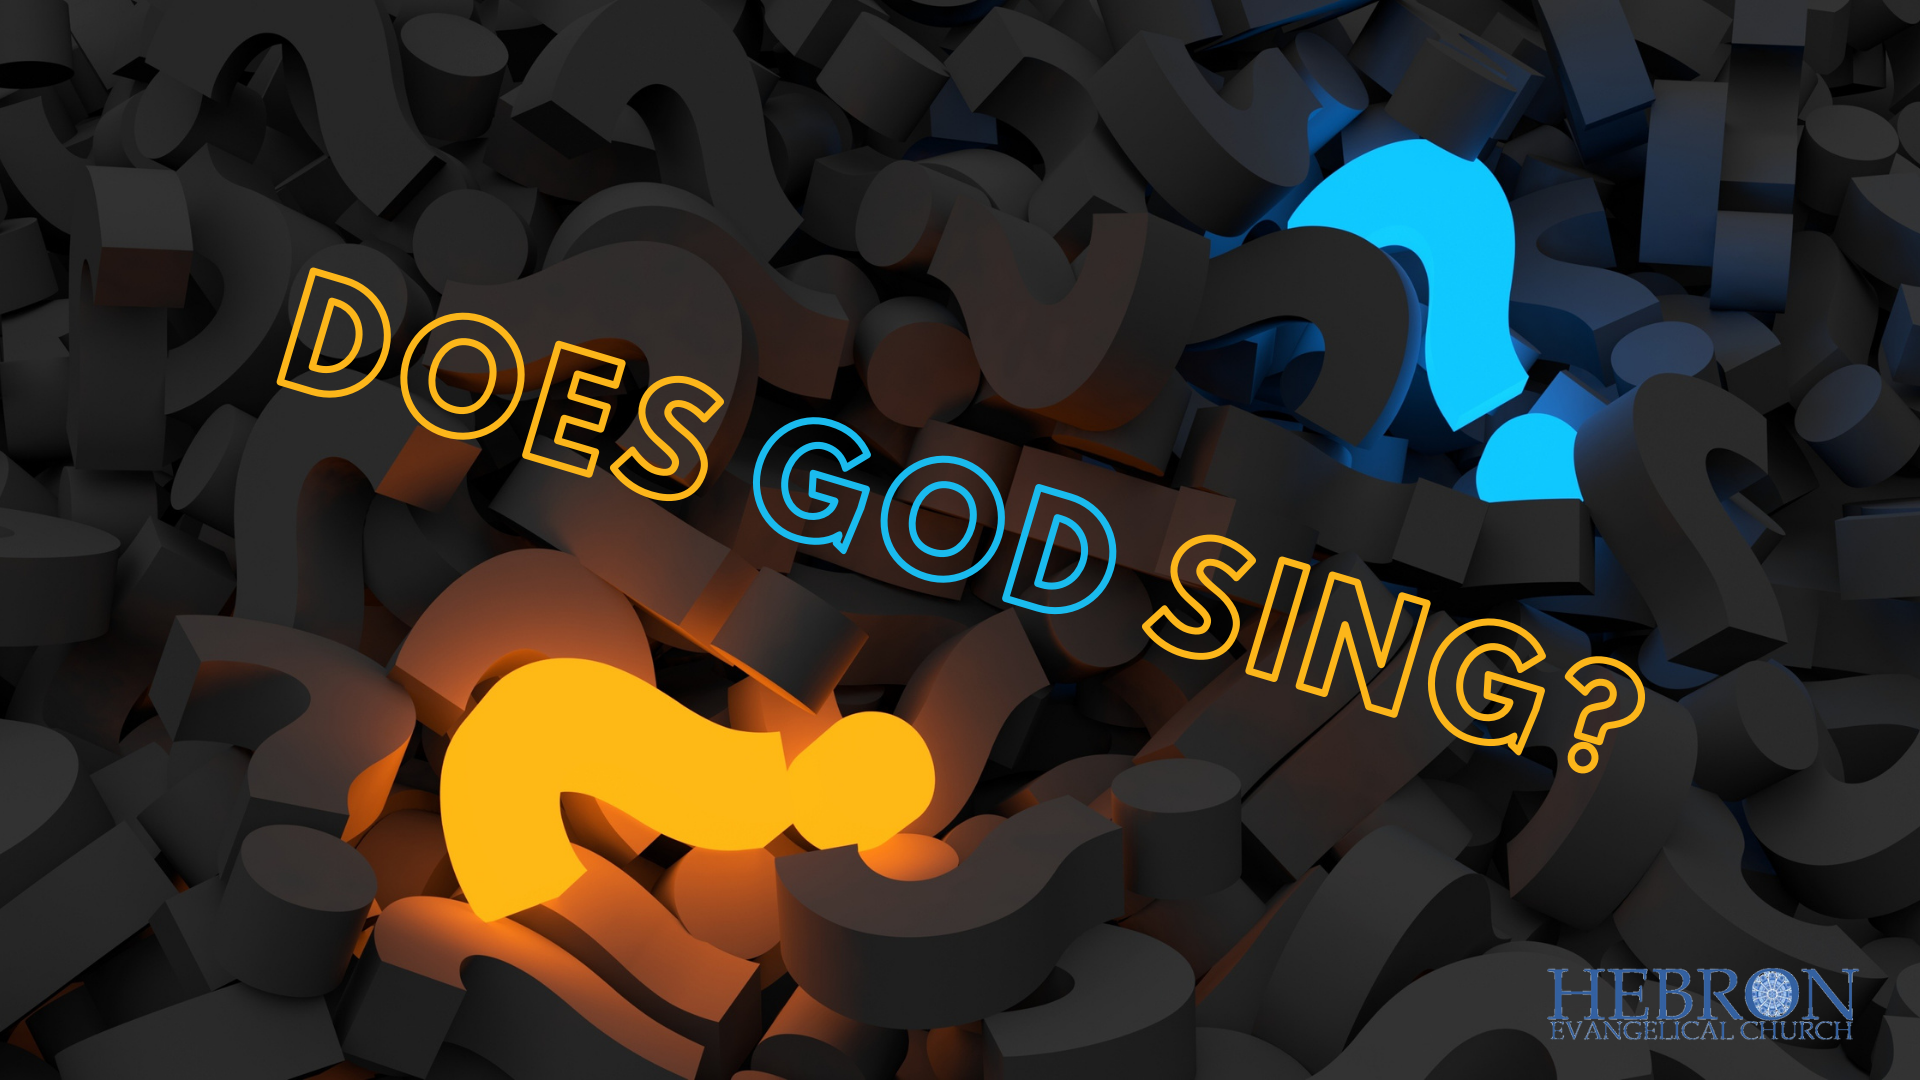 Does god sing